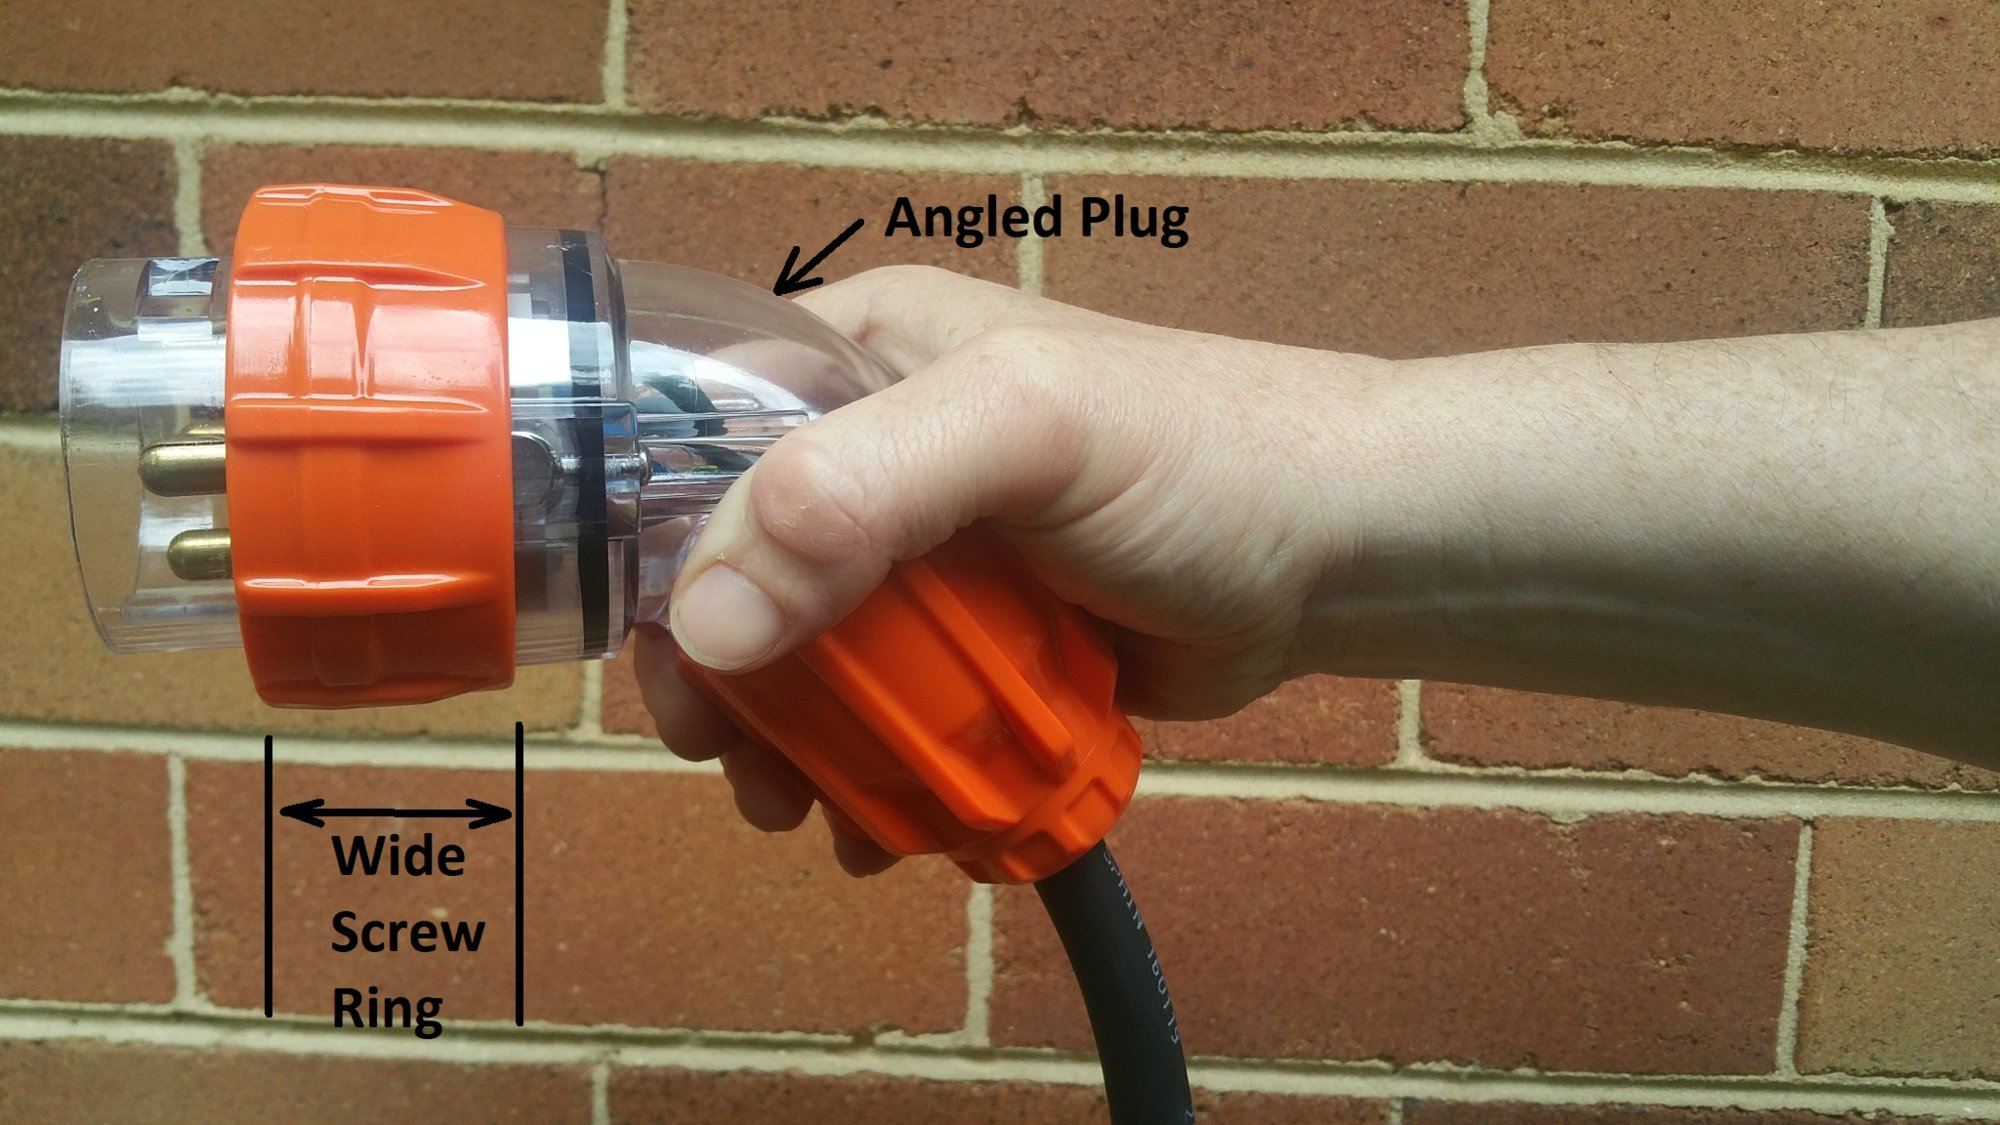 Angled 3 Phase Plug with Wide Screw Ring.jpg